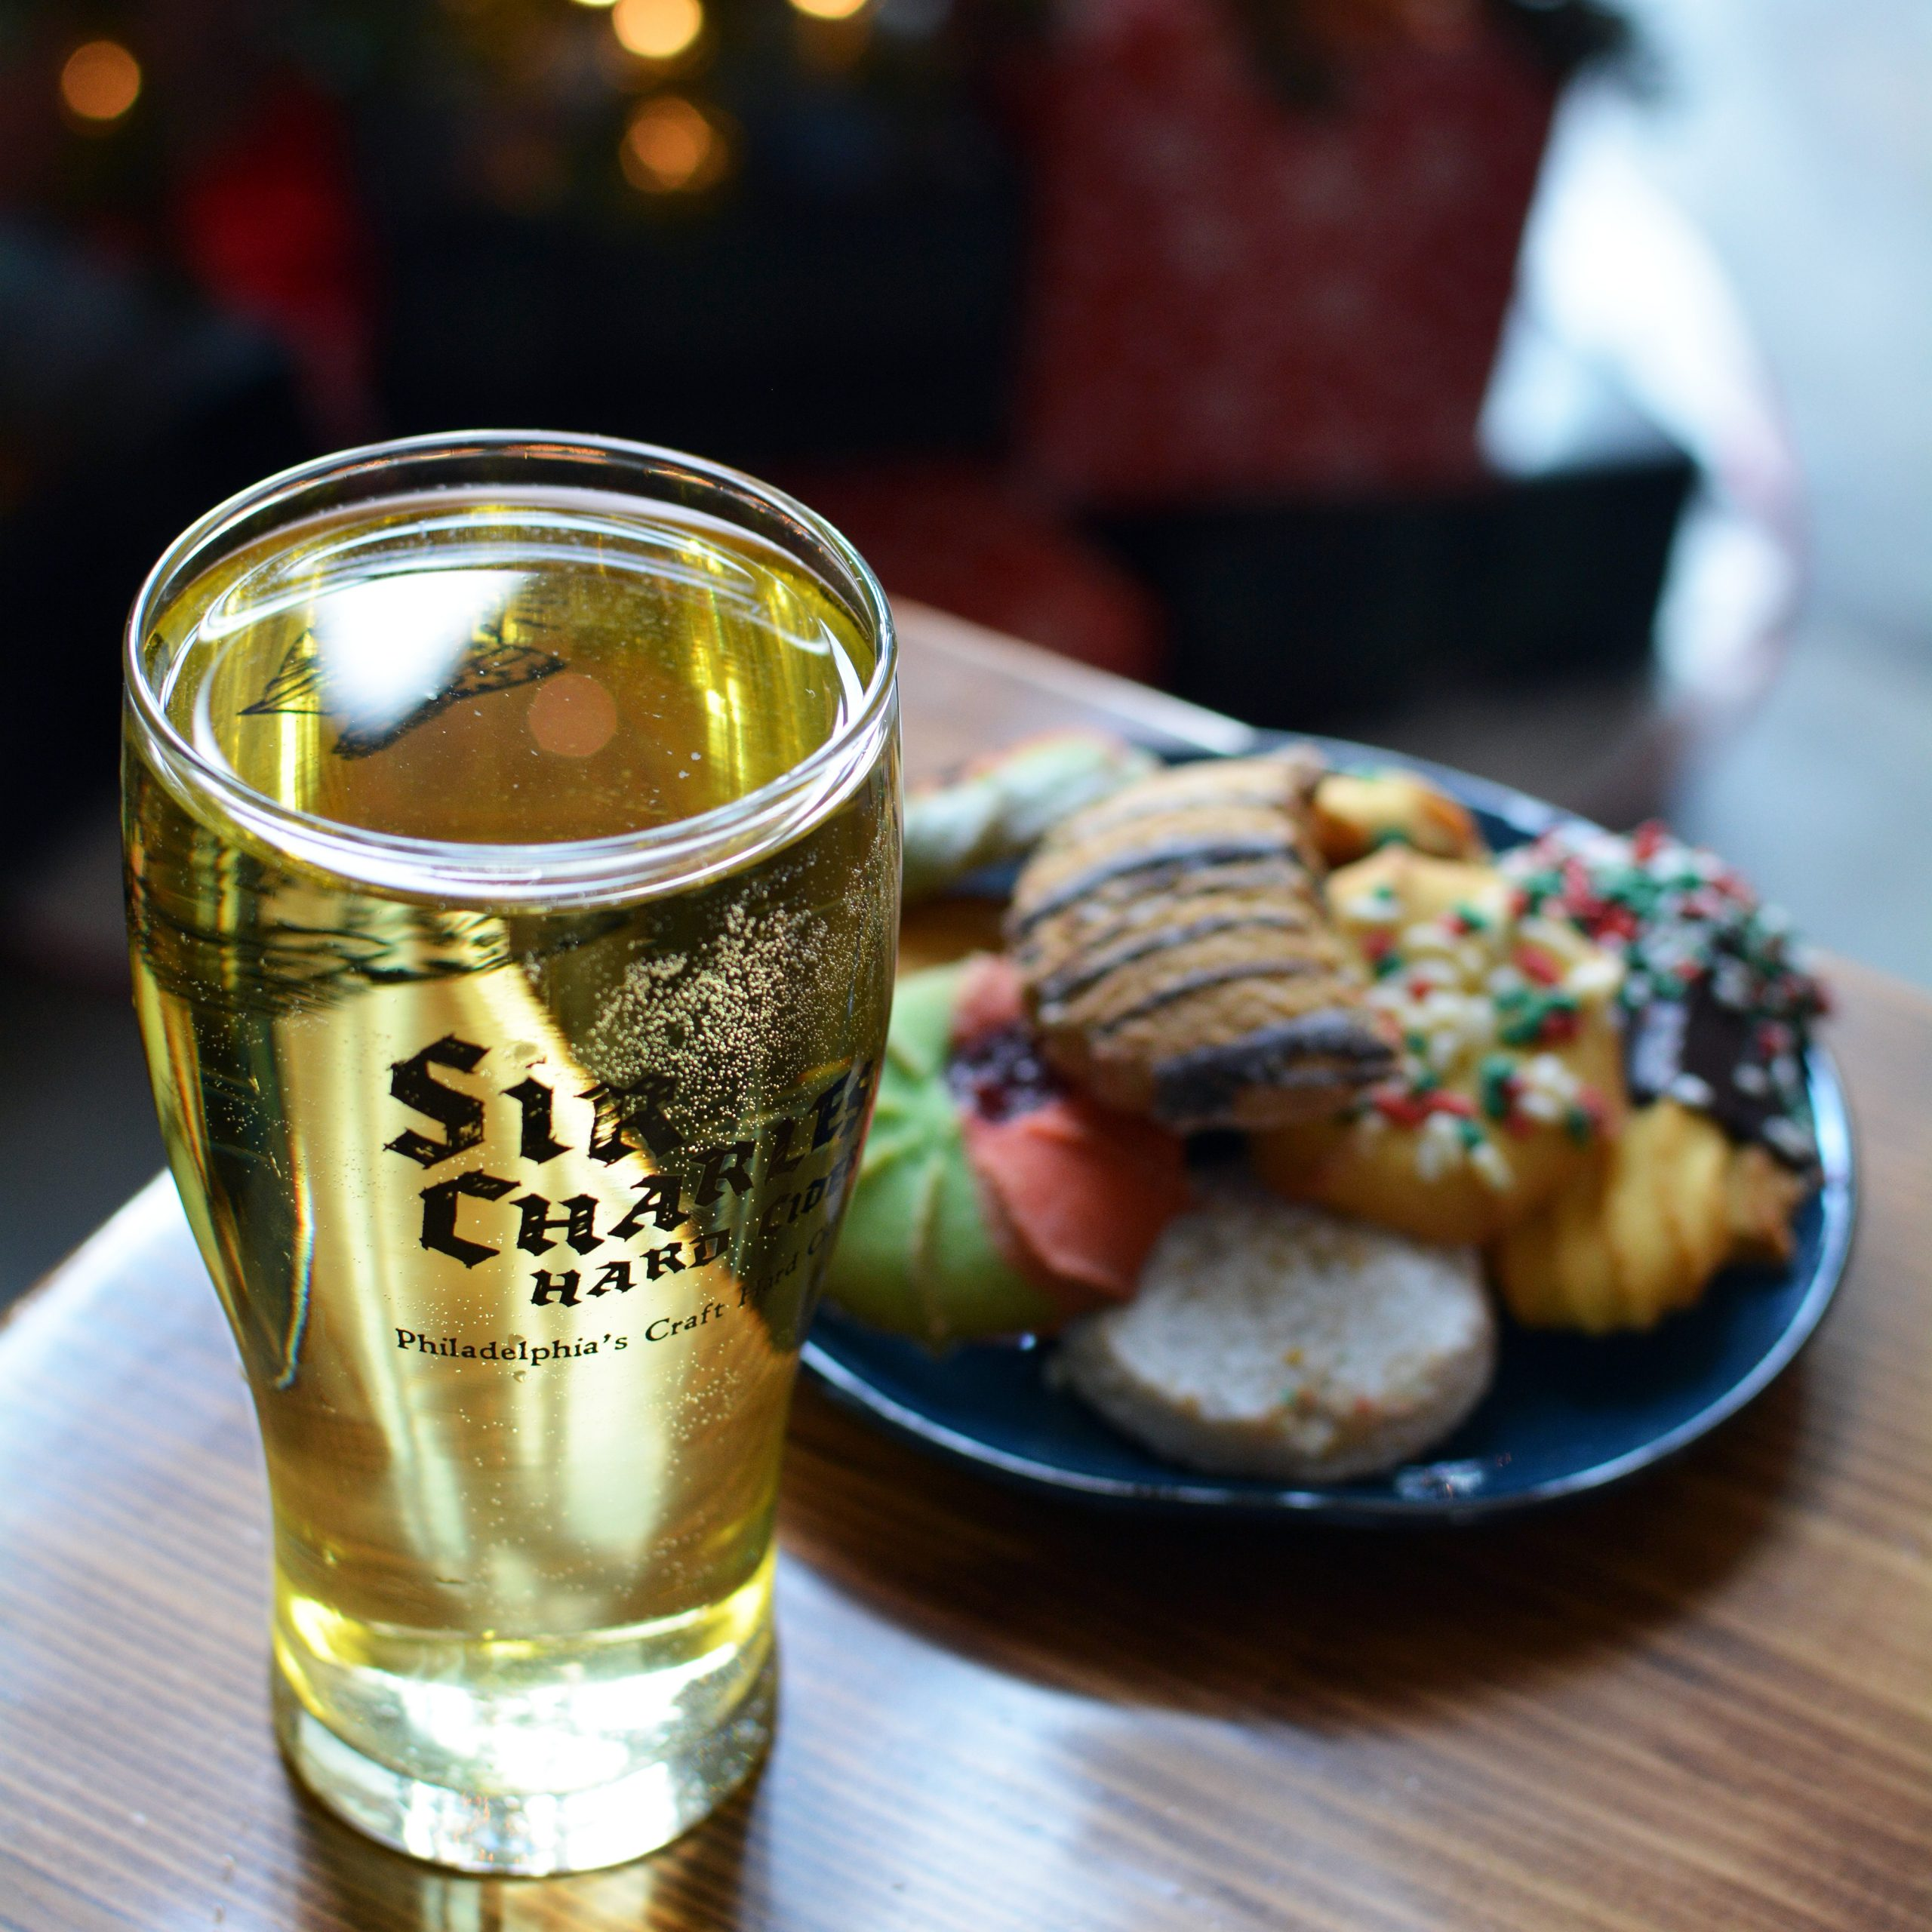 A glass of Sir Charles Hard Cider, with a plate of Christmas cookies in the background